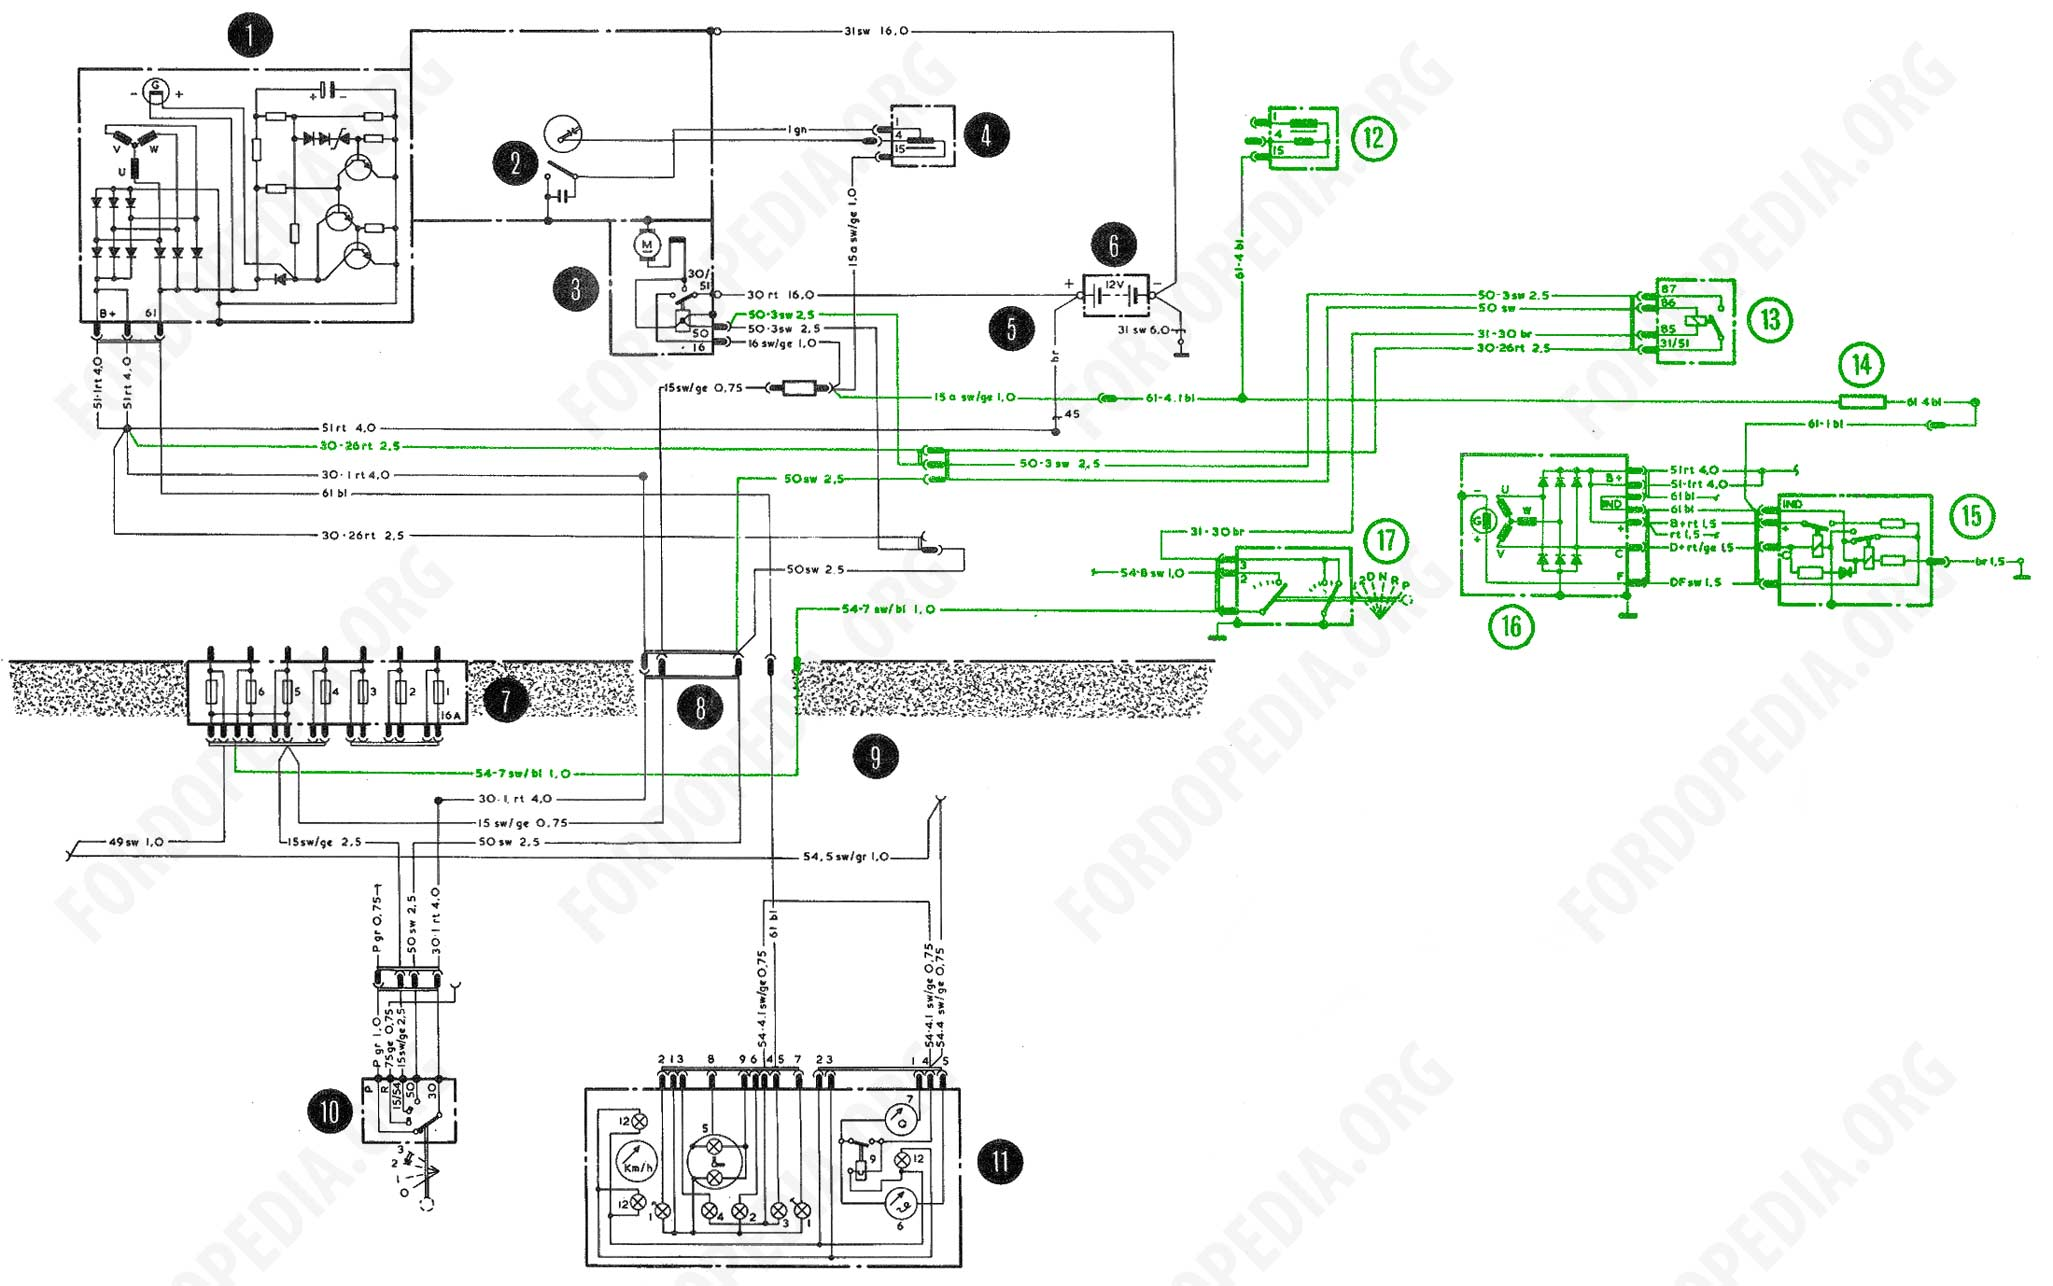 Toyota 4 0 Engine Diagram Download Full Size Image 2056x1283 220 Kb Wiring Diagrams Taunus Tc2 Cortina Mk4 Base Version L Gl